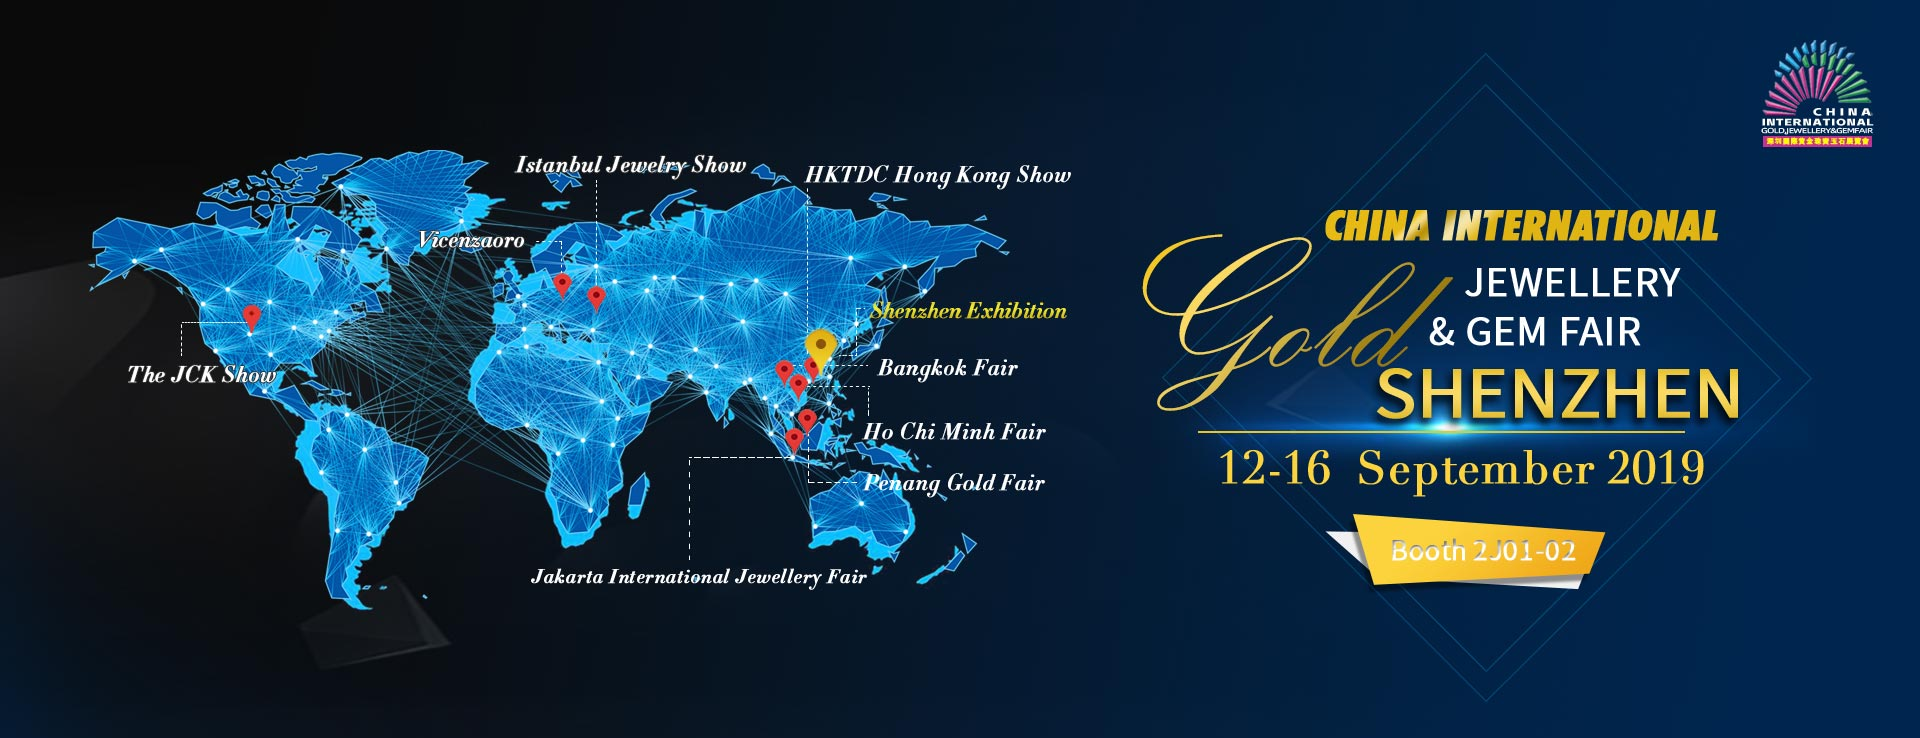 China international jewelry & gems fair Shenzhen